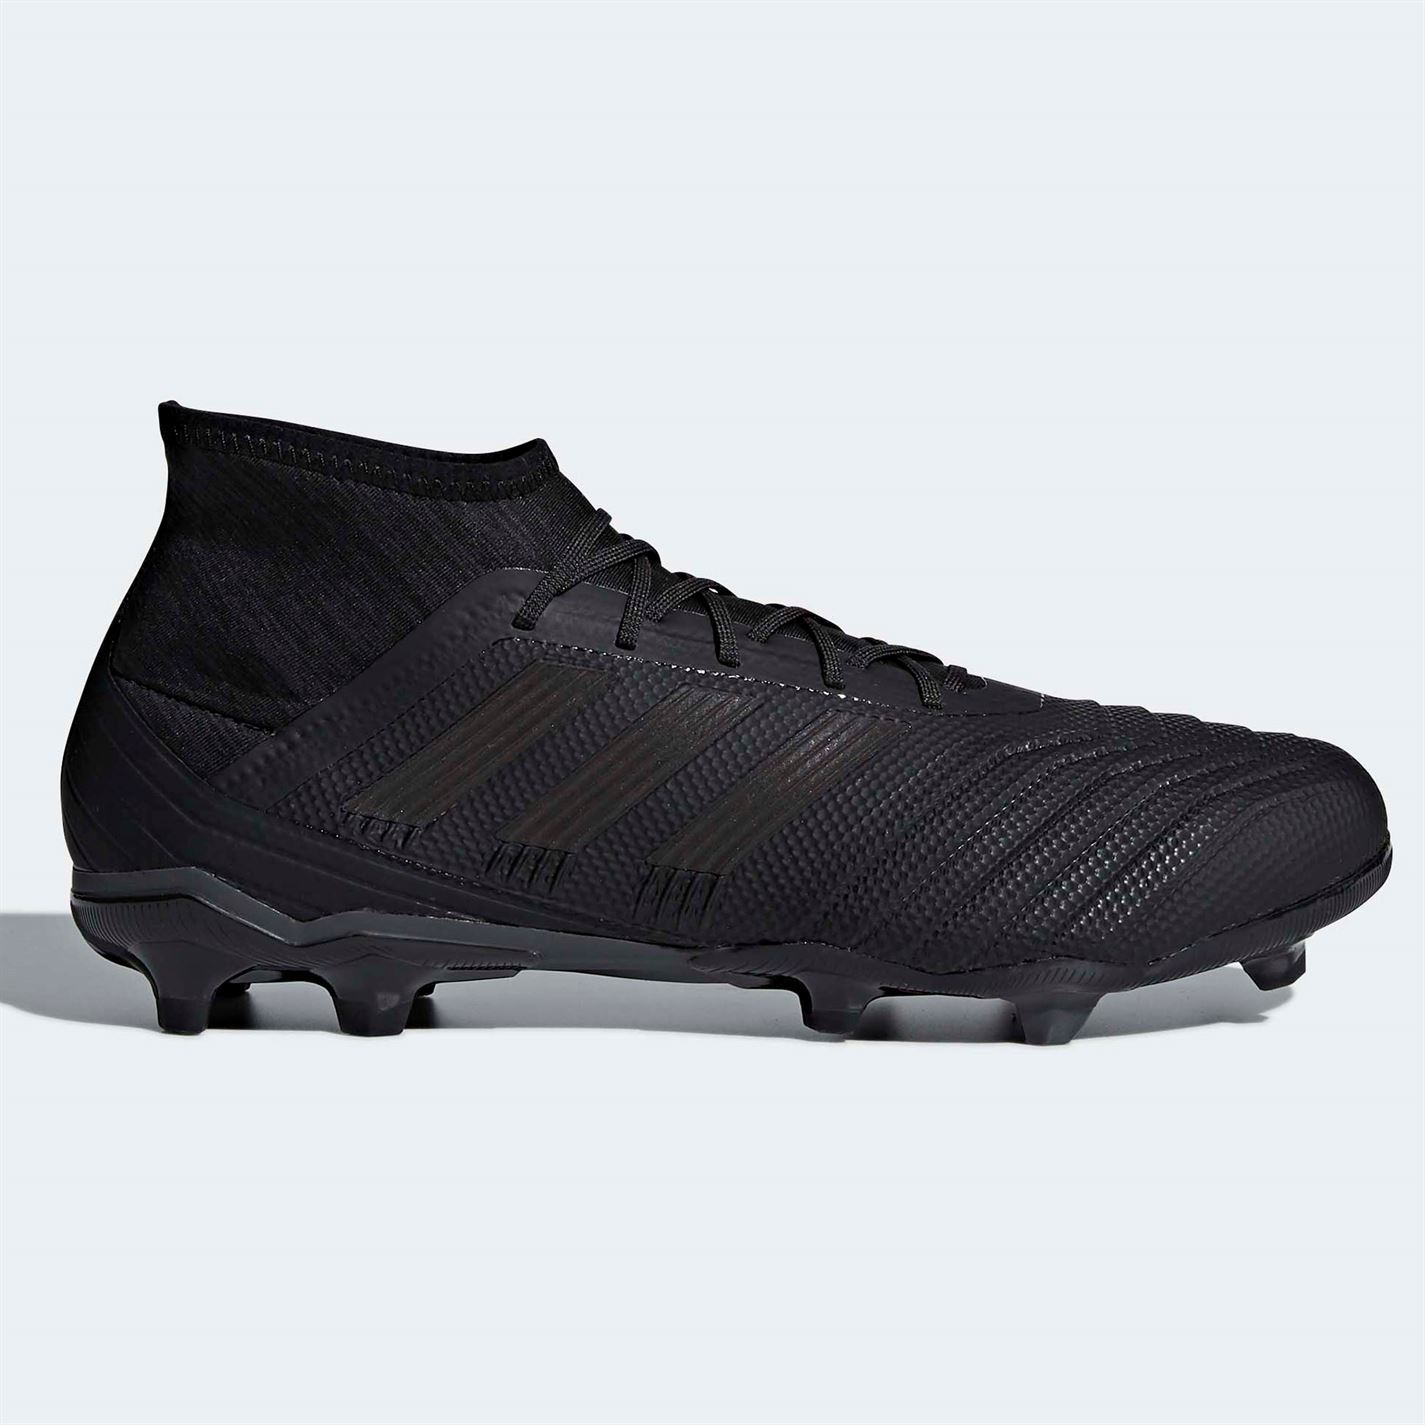 dd35bf9c246 ... adidas Predator 18.2 FG Firm Ground Football Boots Black Mens Soccer  Shoe Cleats ...